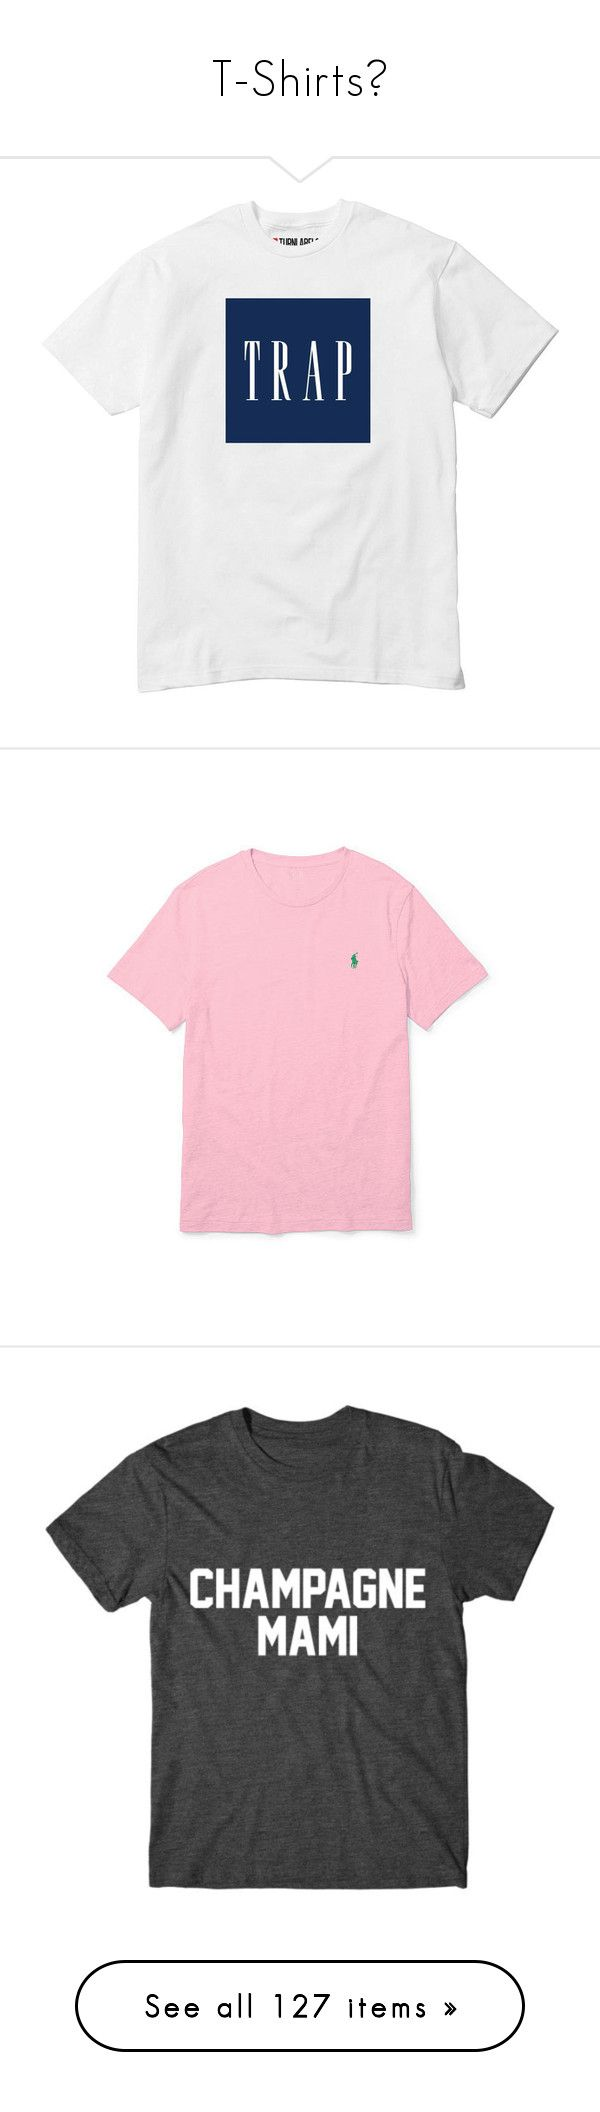 """""""T-Shirts👕"""" by trap-u-n-z-e-l ❤ liked on Polyvore featuring tops, t-shirts, shirts, tees, t shirt, hippie shirt, hippie tops, cotton tee, hippie tees and blusas"""